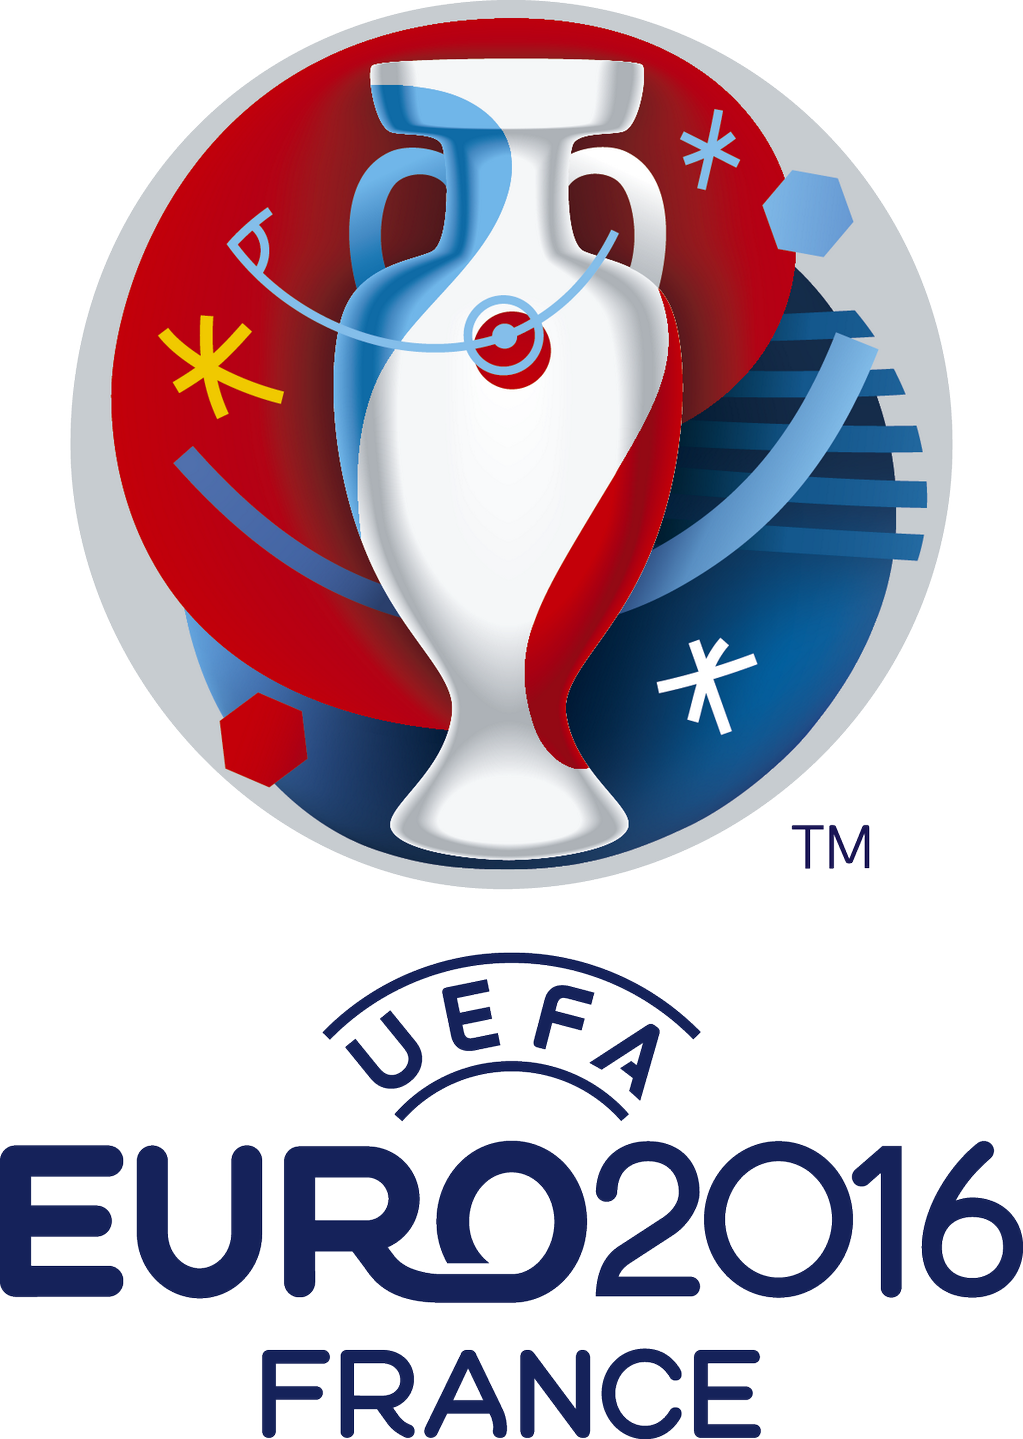 Amazing Europe World Cup 2018 - logo-fifa-world-cup-2018-png-2000-96x172-euro-2016-logo-euro-2016-logo-1023x1439-fifa-rmcf-club-world-cup-1023  Best Photo Reference_718589 .png